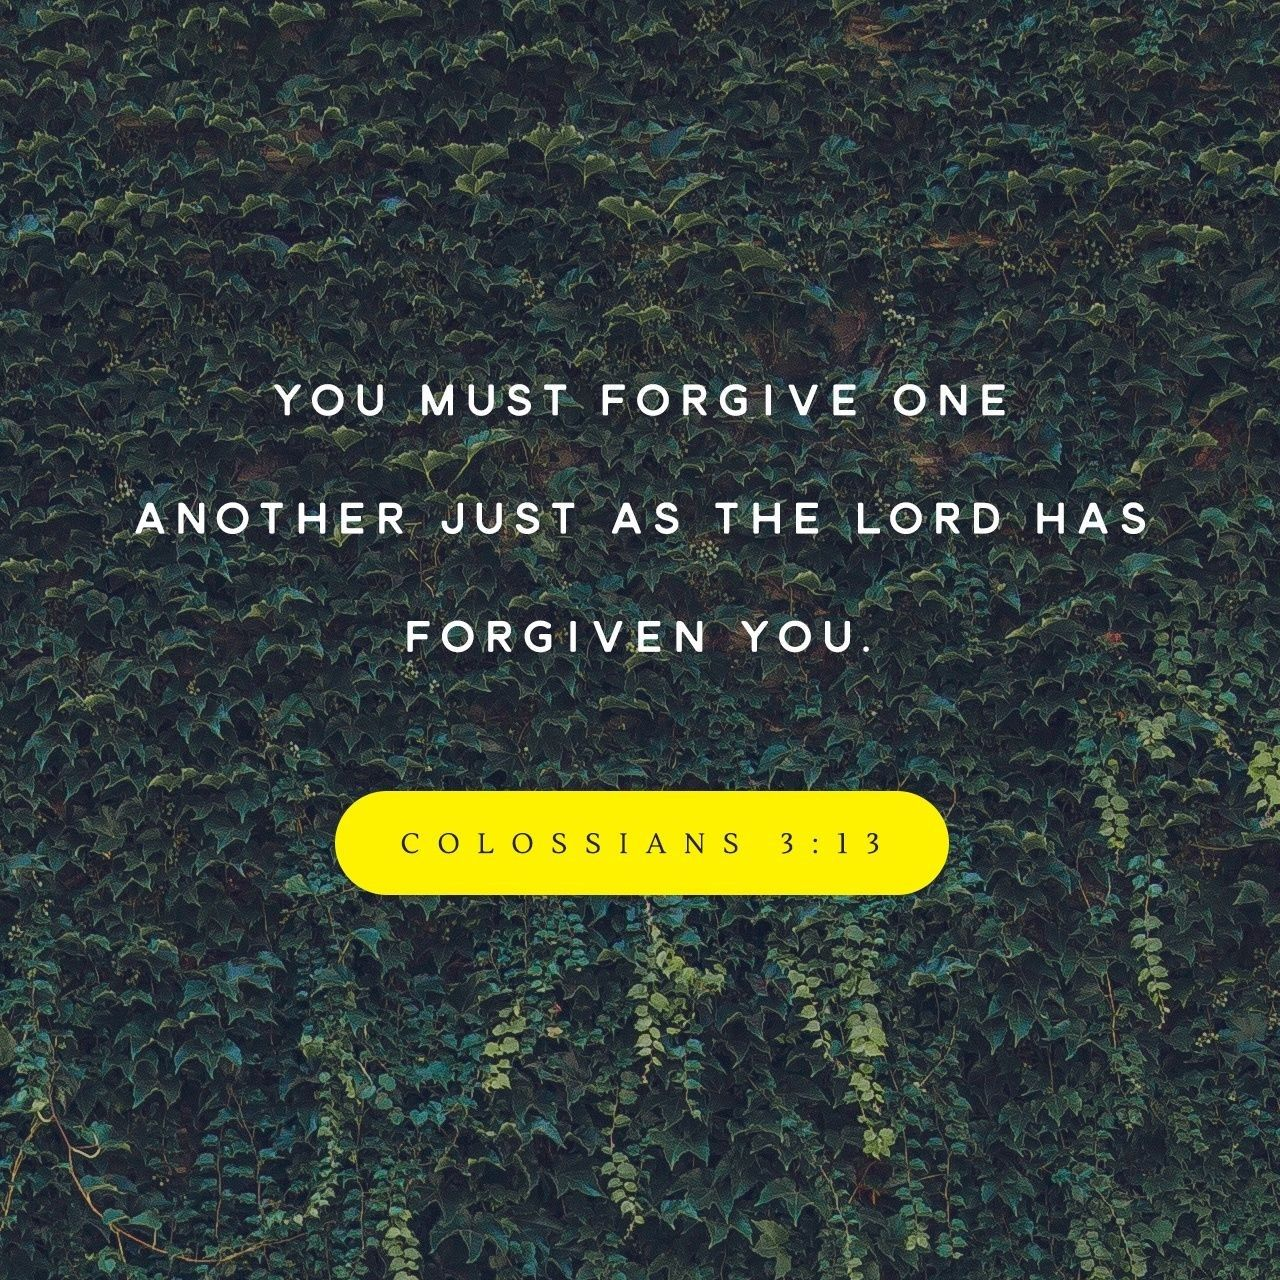 Image result for even as Christ forgave you so must you do